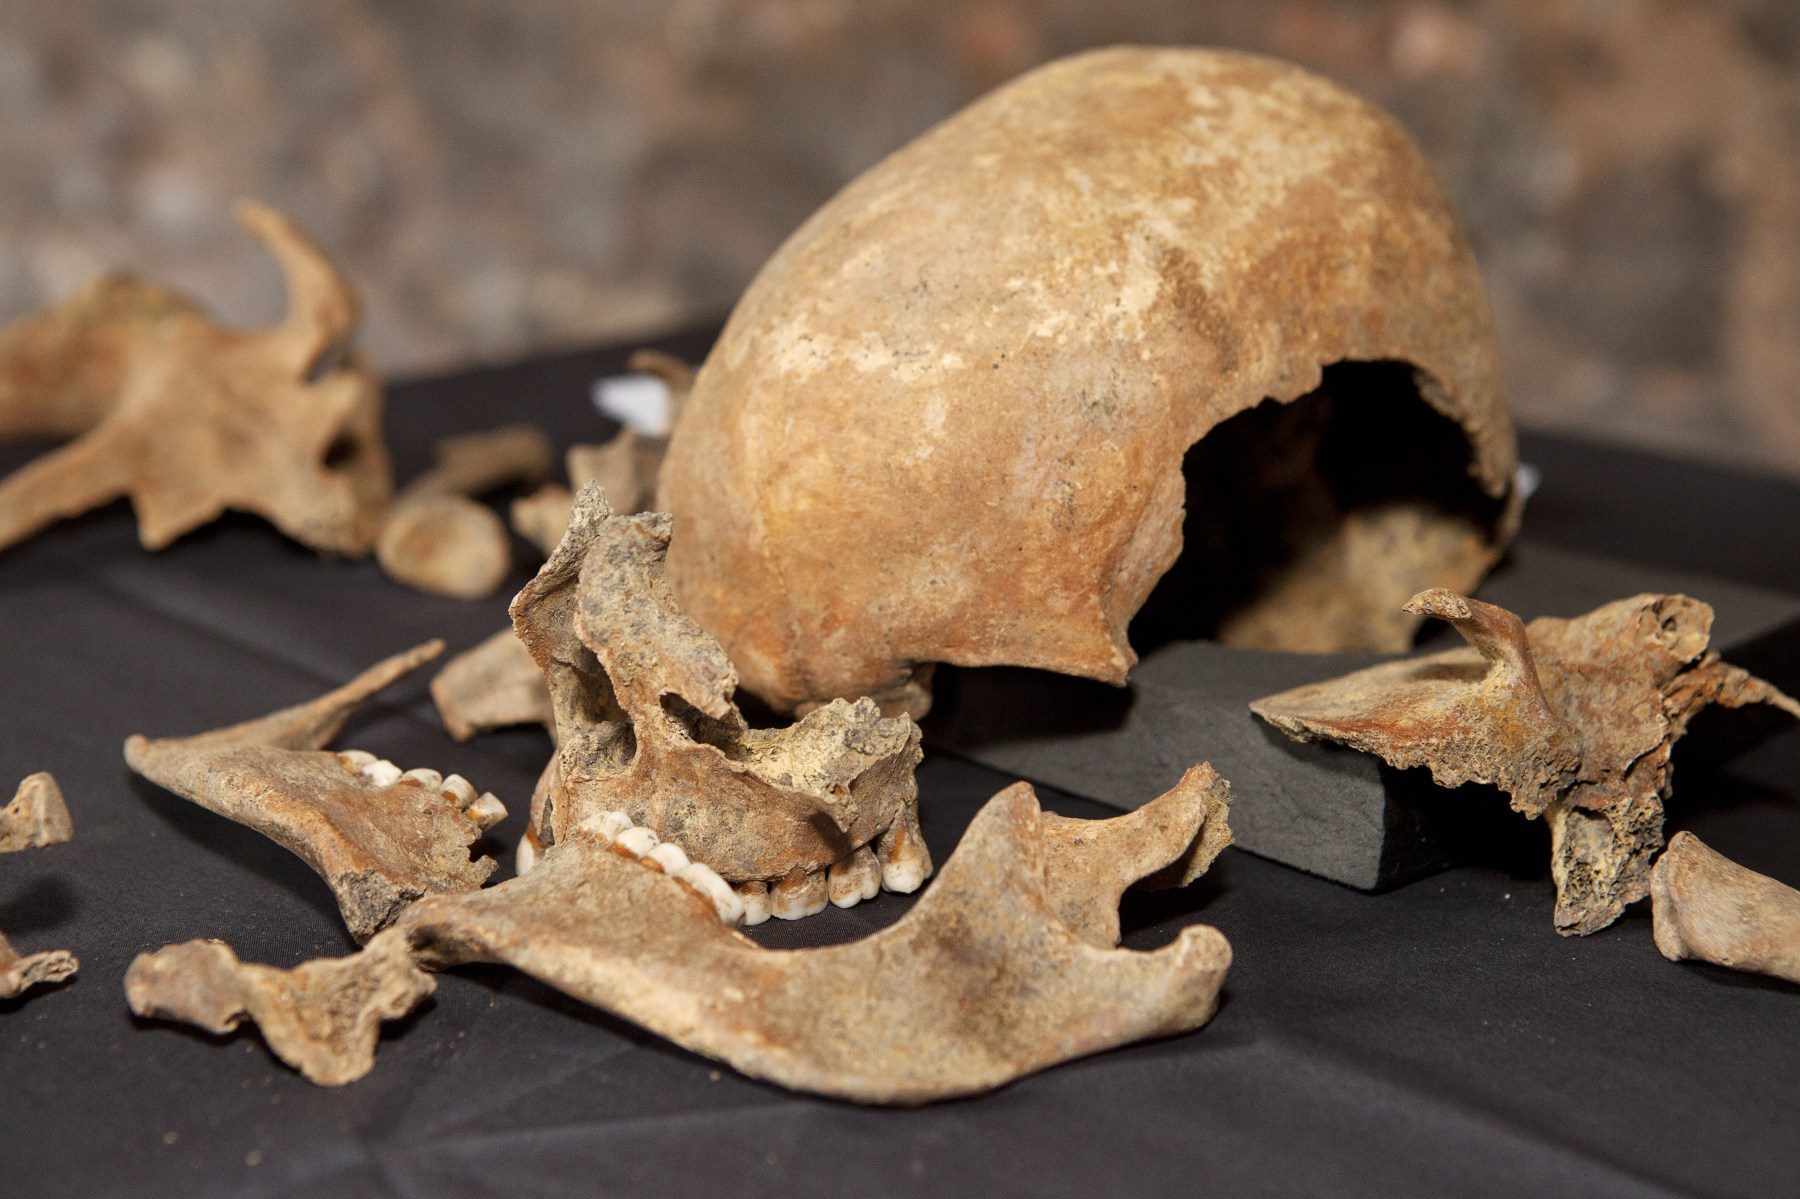 Archaeologist Discovered Medieval Britain Skeletons of Black Death victims during excavations for London Crossrail